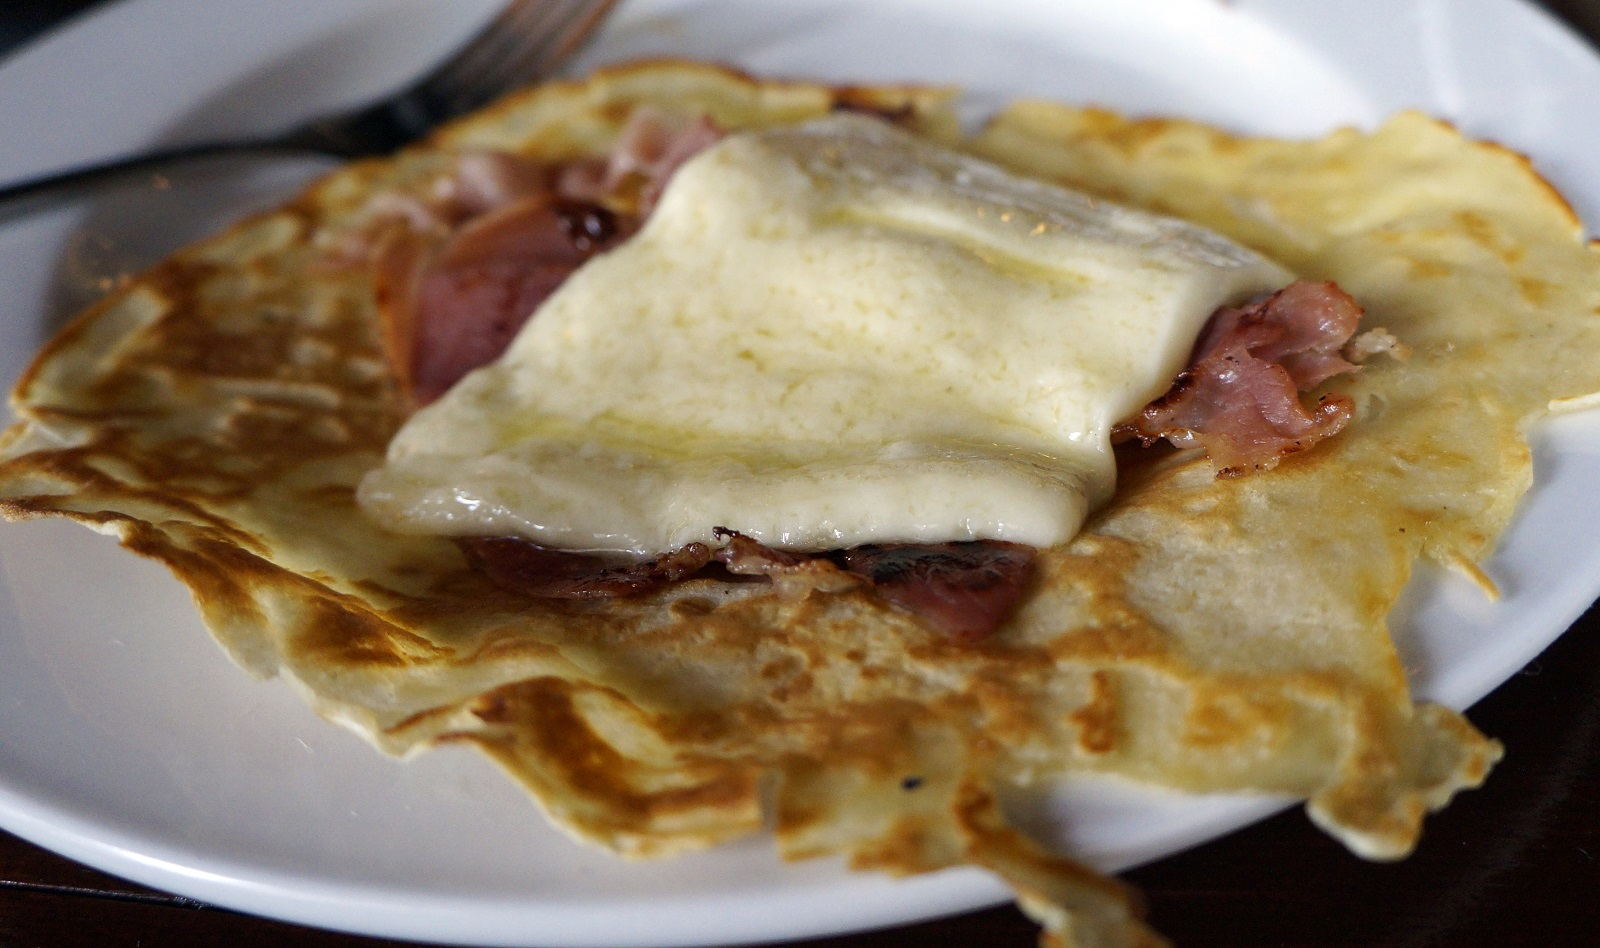 The finished progress of a raclette from Raclettes. (Lizz Schumer/Special to The News)